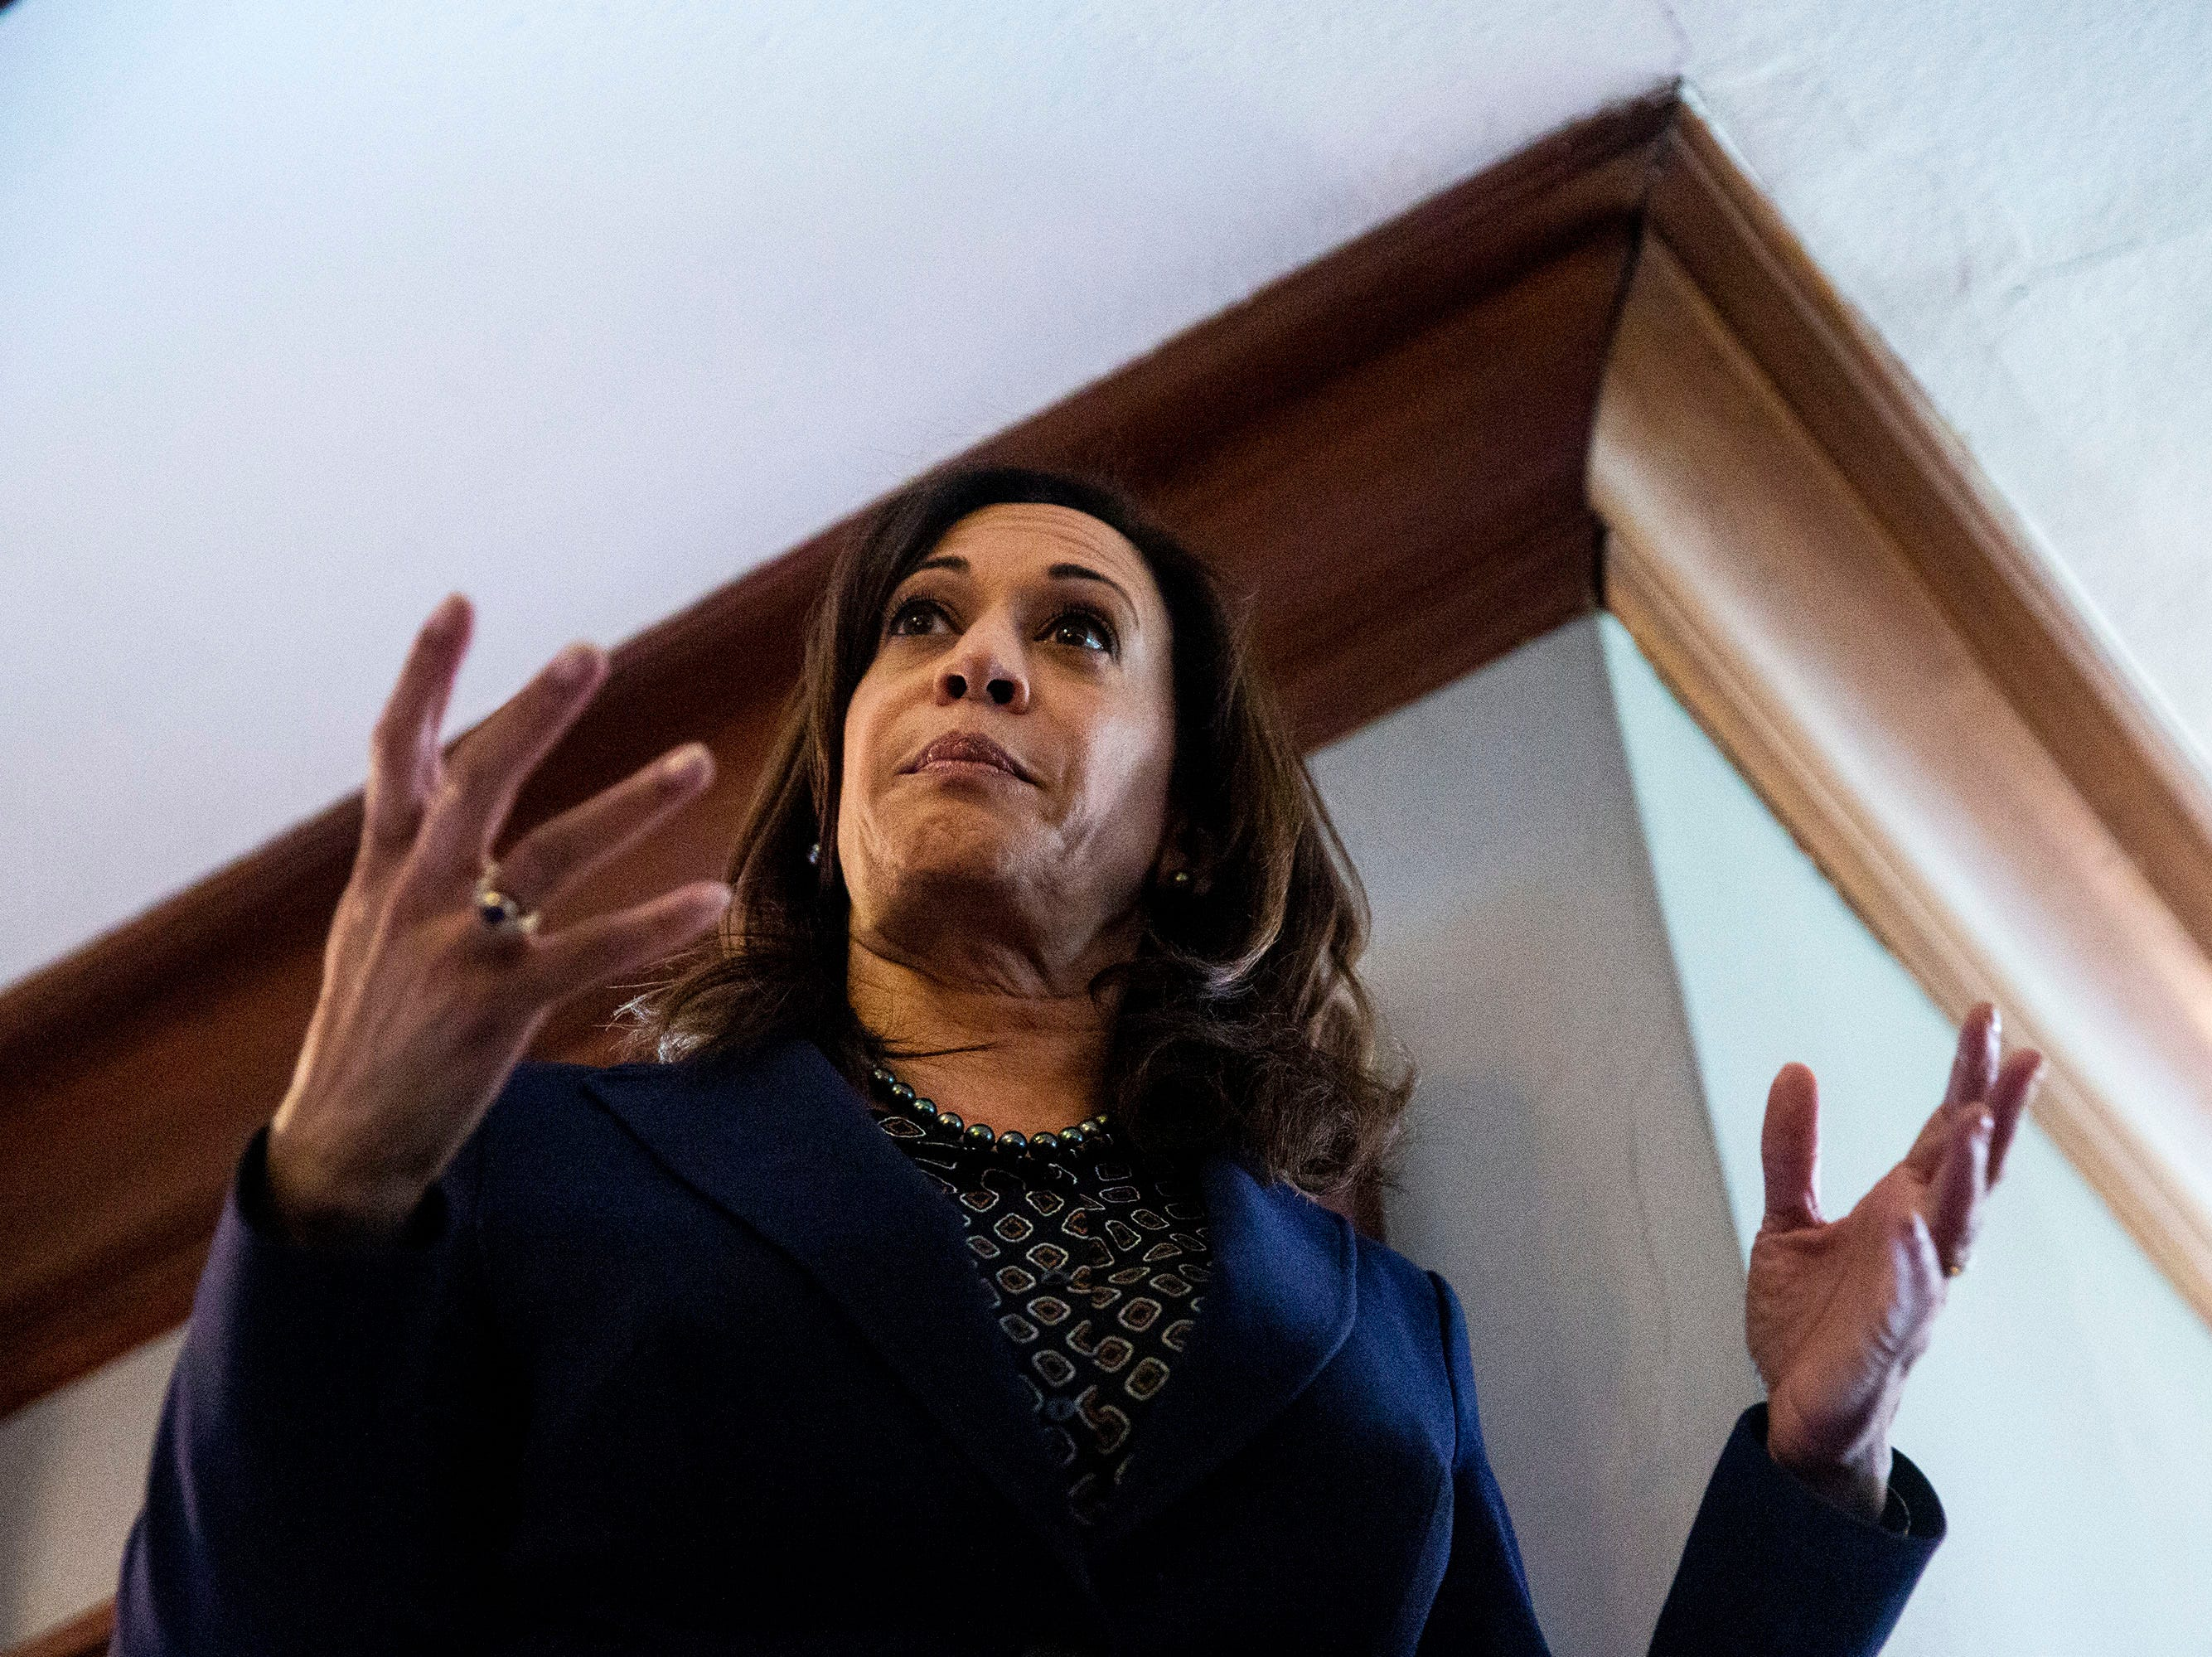 Sen. Kamala Harris, D-CA, speaks to a crowd of people at a house party on Thursday, April 11, 2019, in Des Moines.